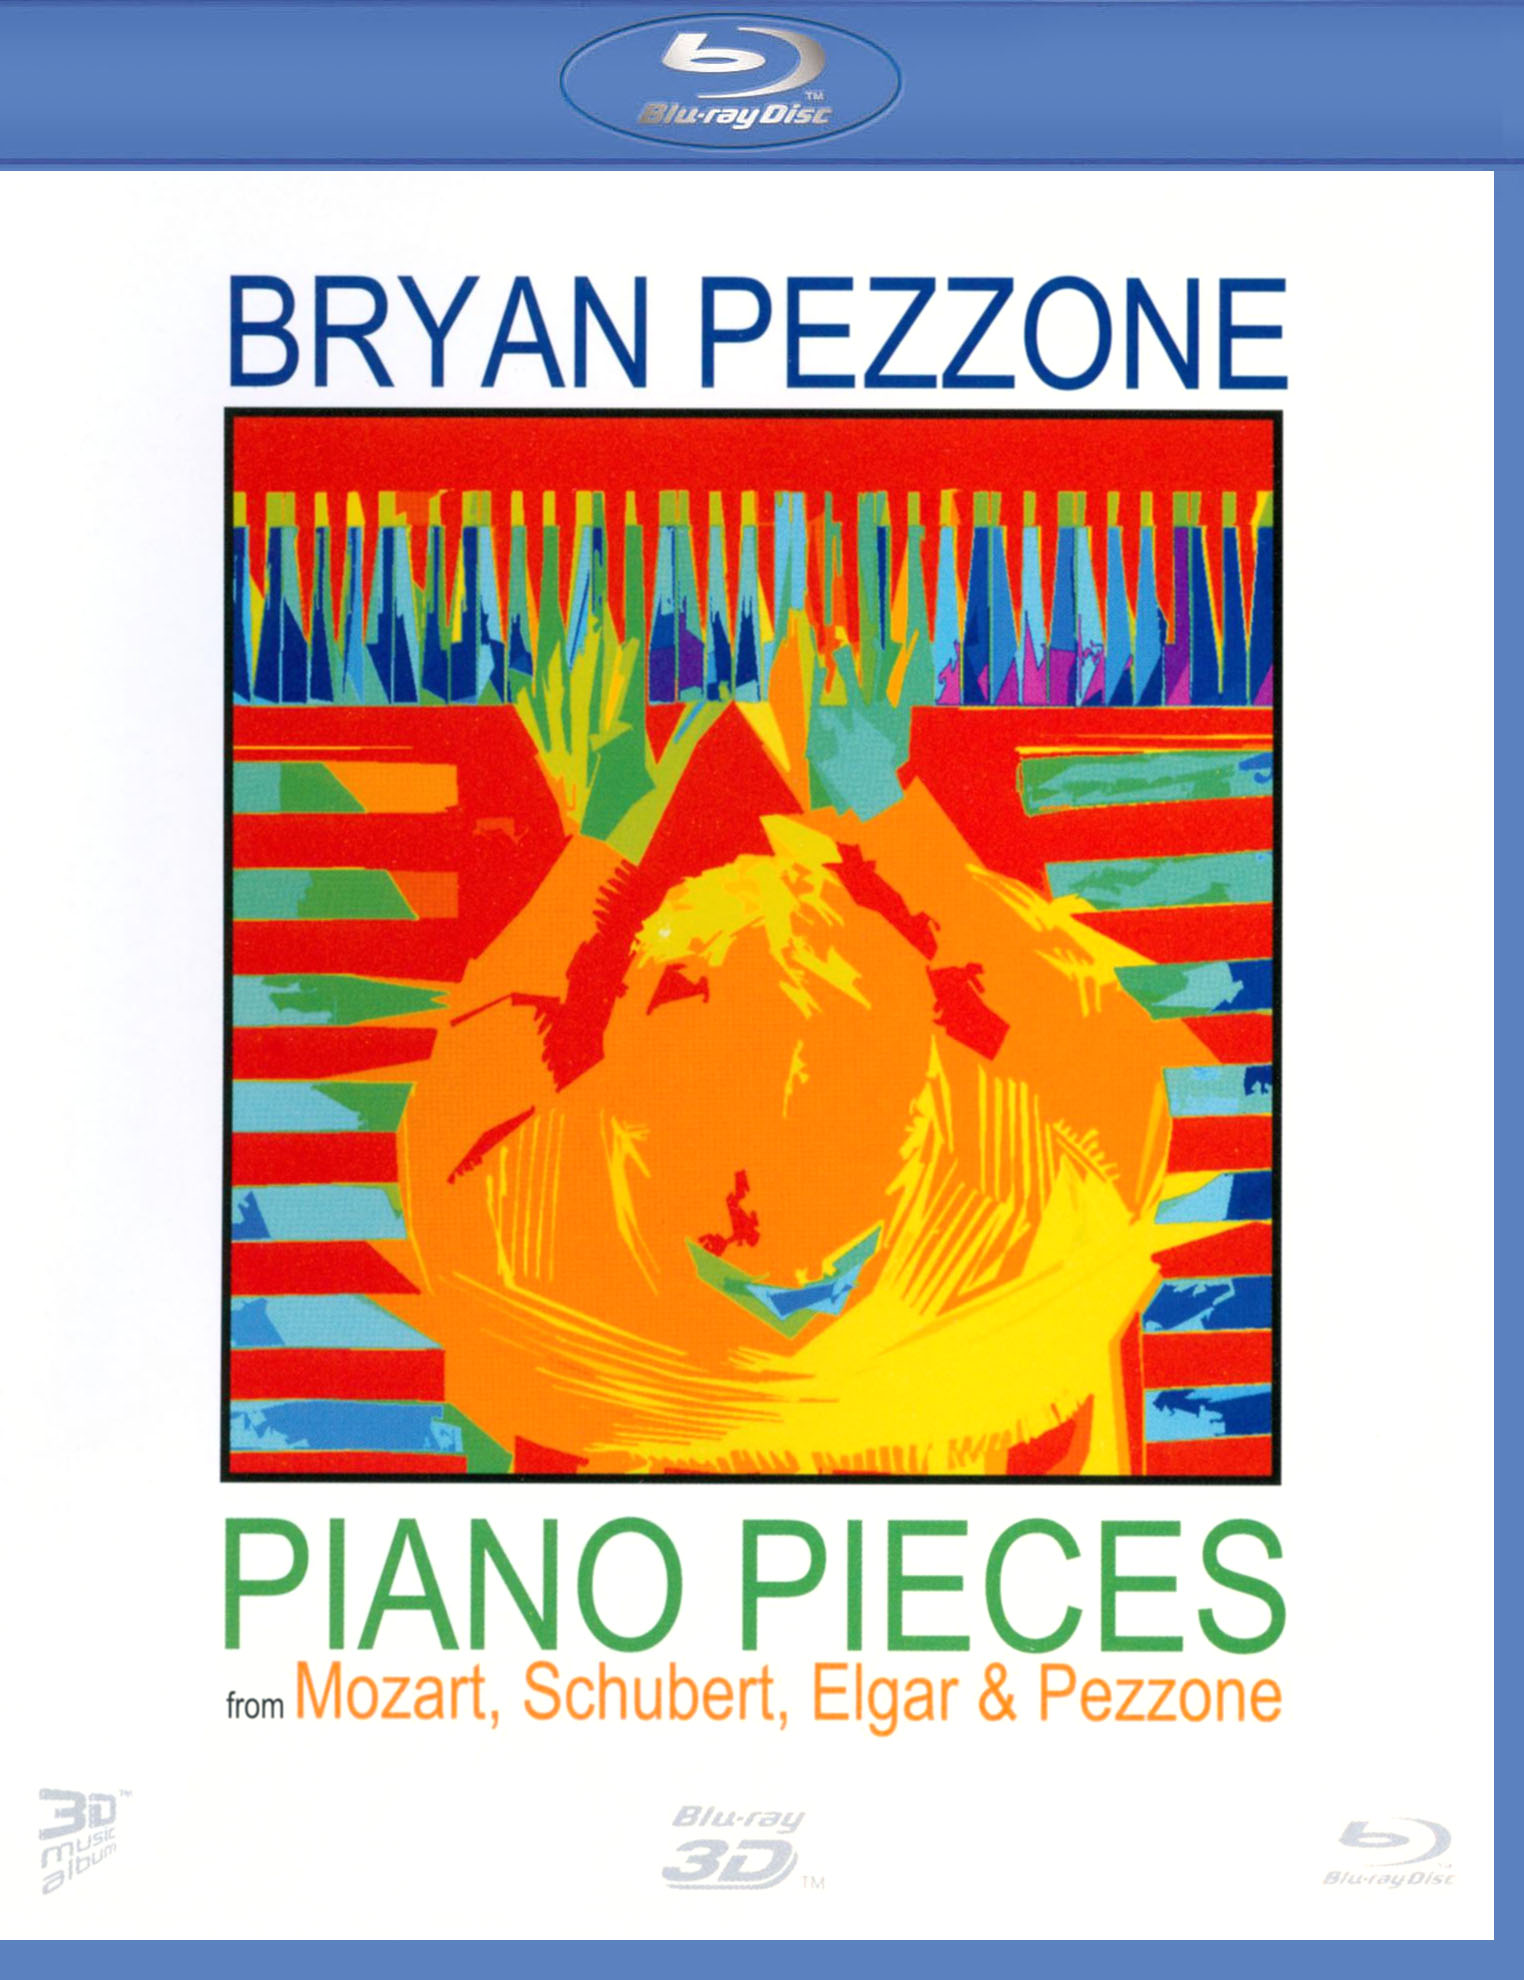 Brian Pezzone: Piano Pieces from Mozart, Schubert, Elgar & Pezzone